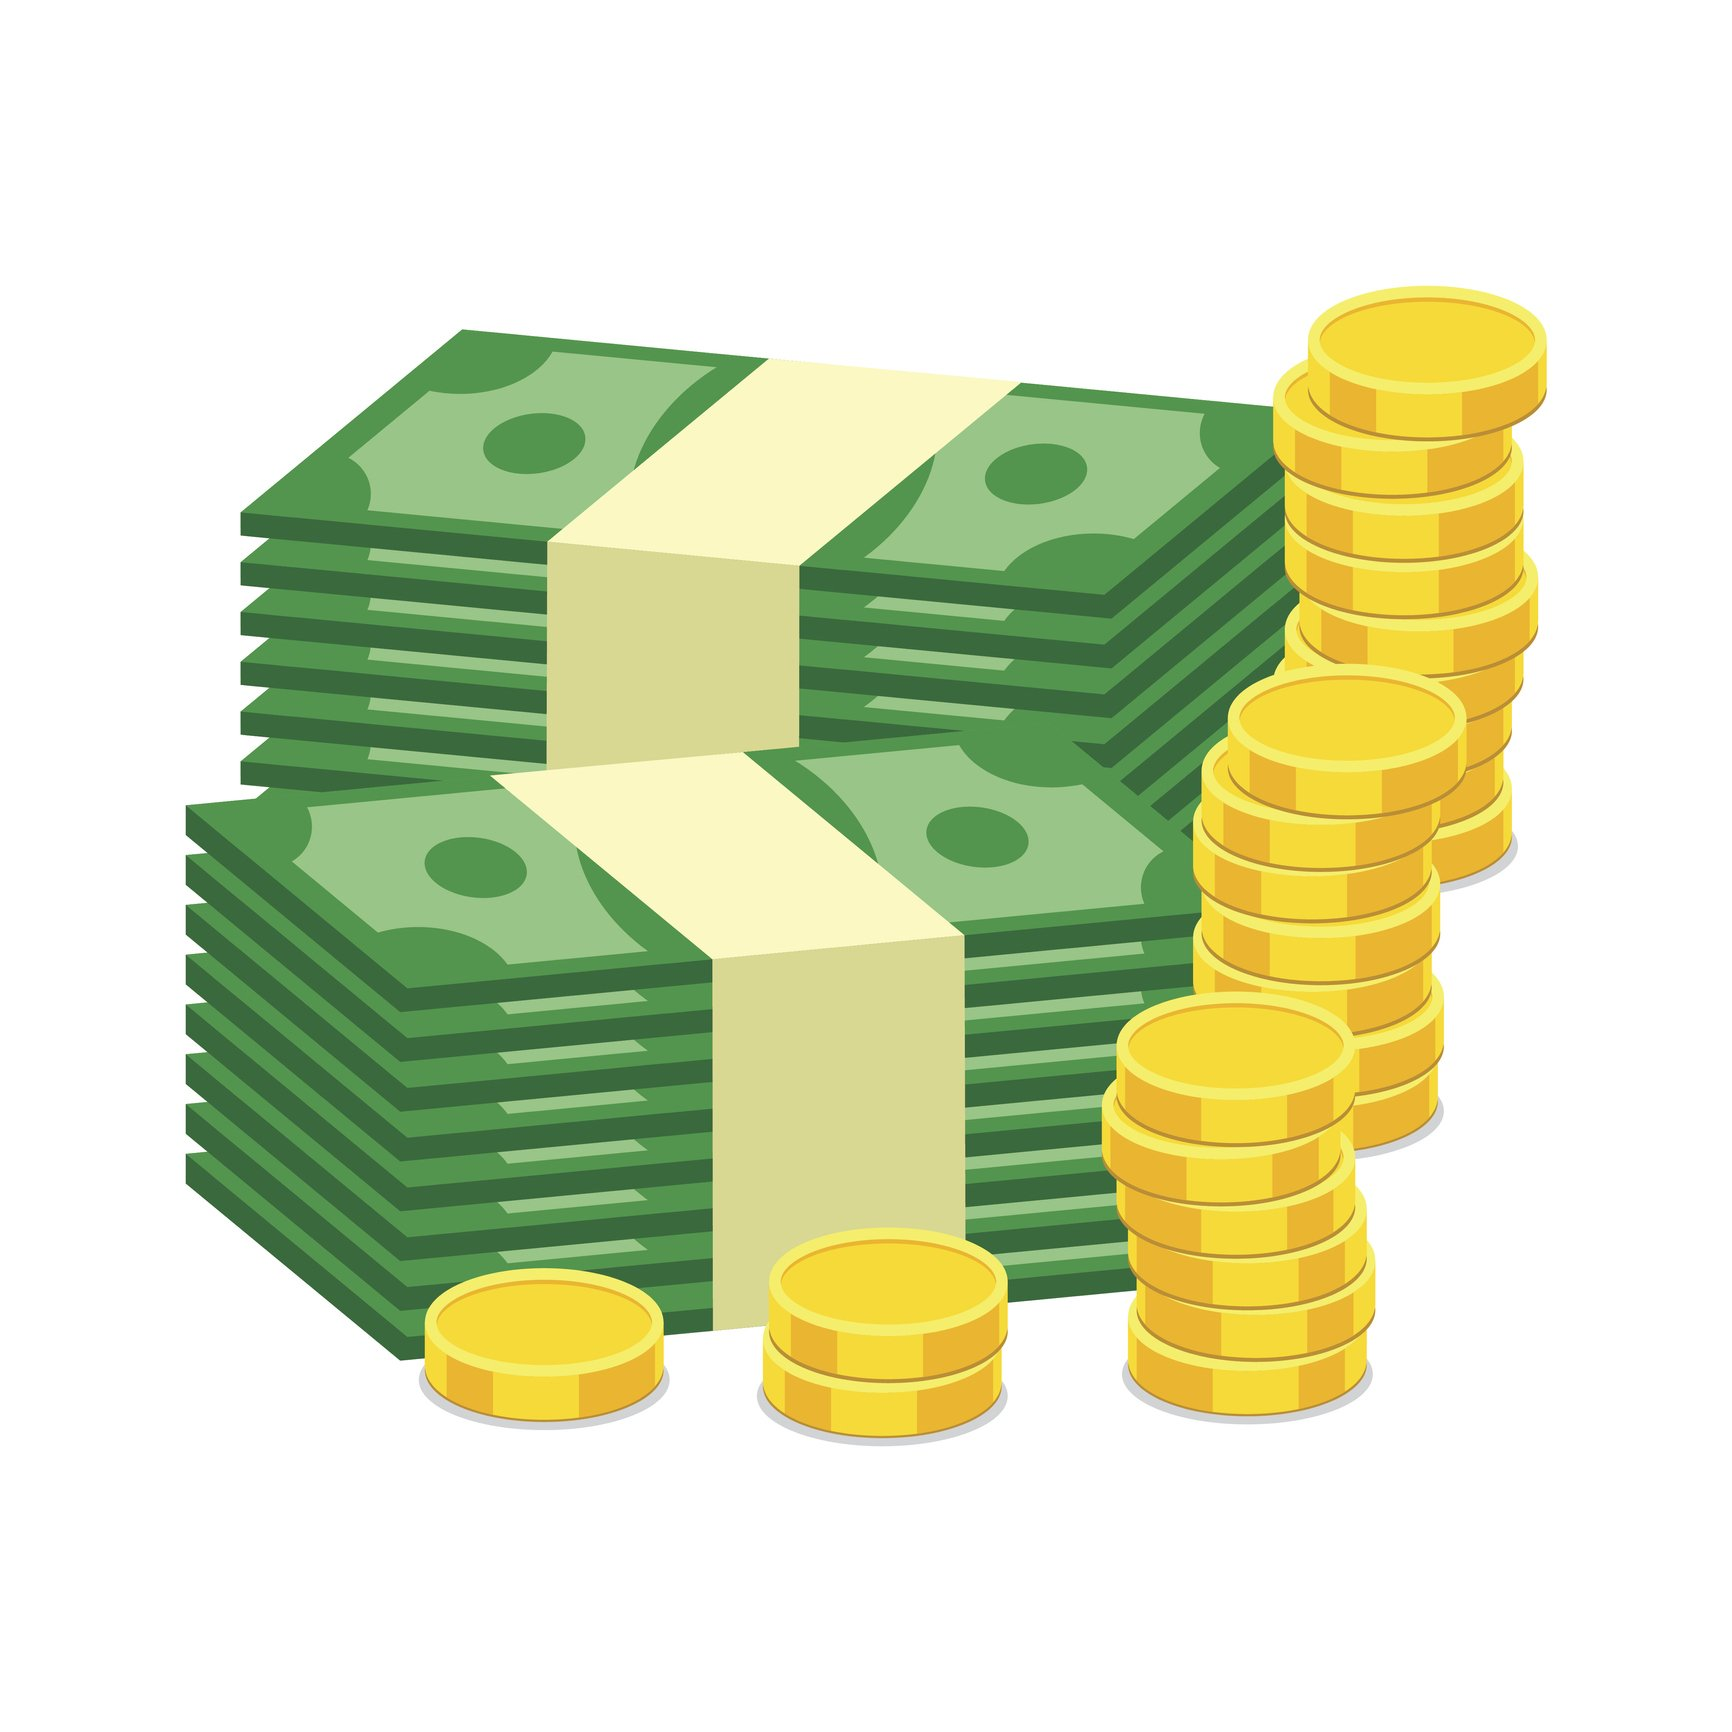 Stacks of gold coins and dollar cash. Vector illustration in flat design on white background